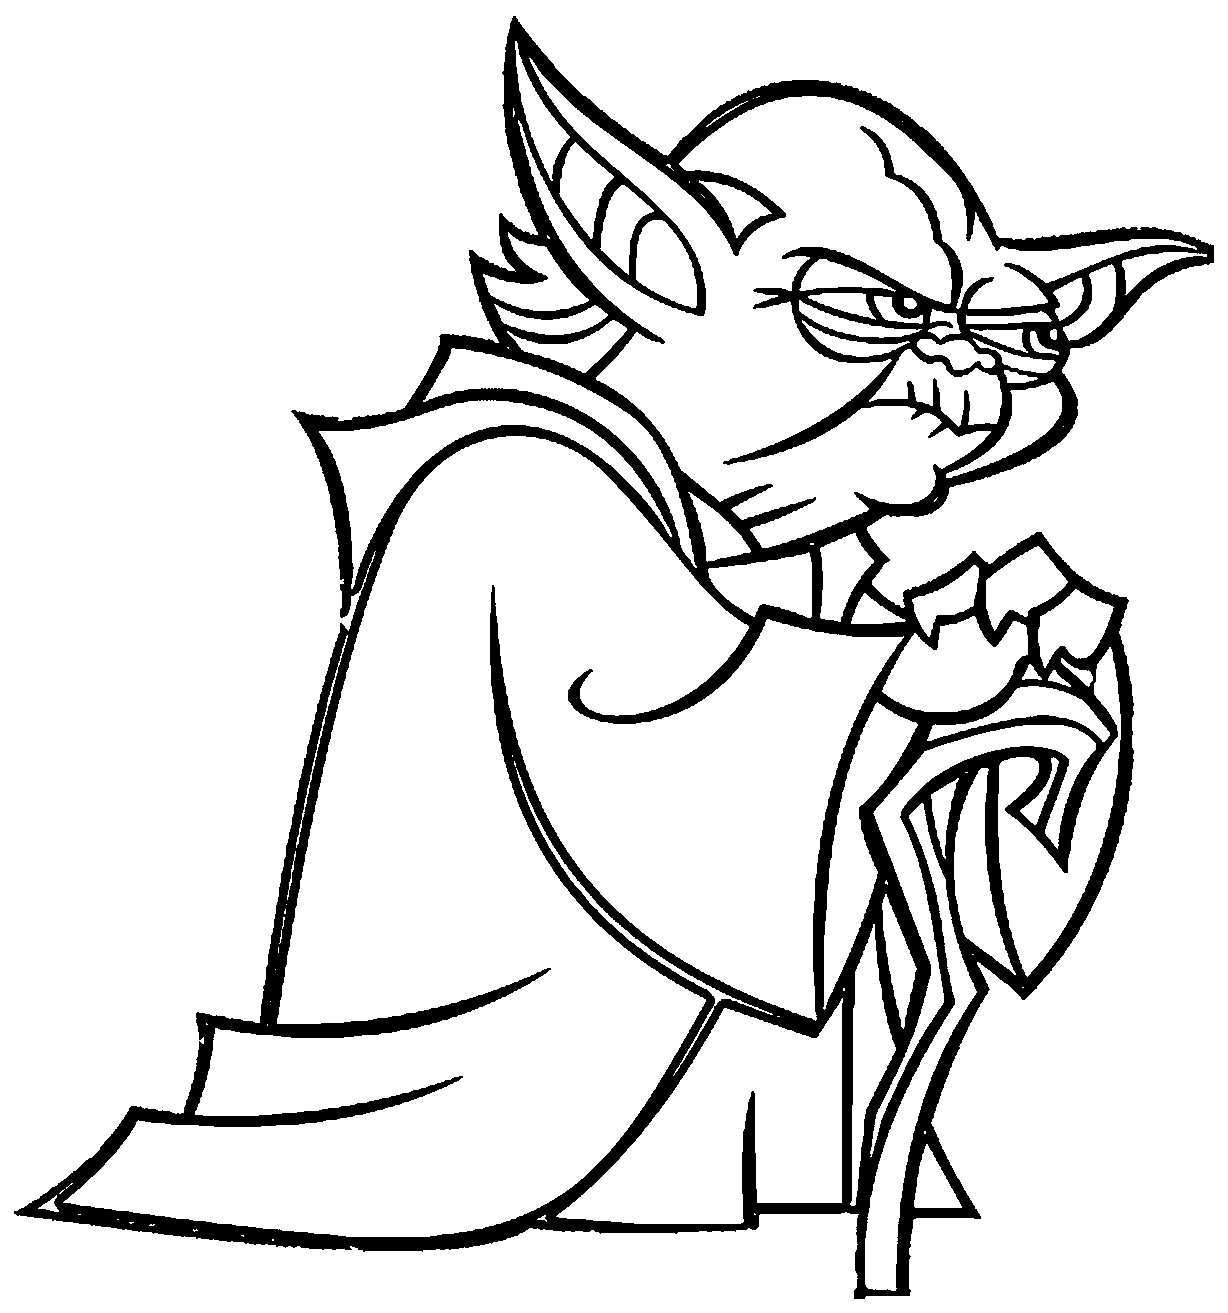 1228x1313 Film Star Wars Wallpaper Star Wars 7 Coloring Pages Star Wars